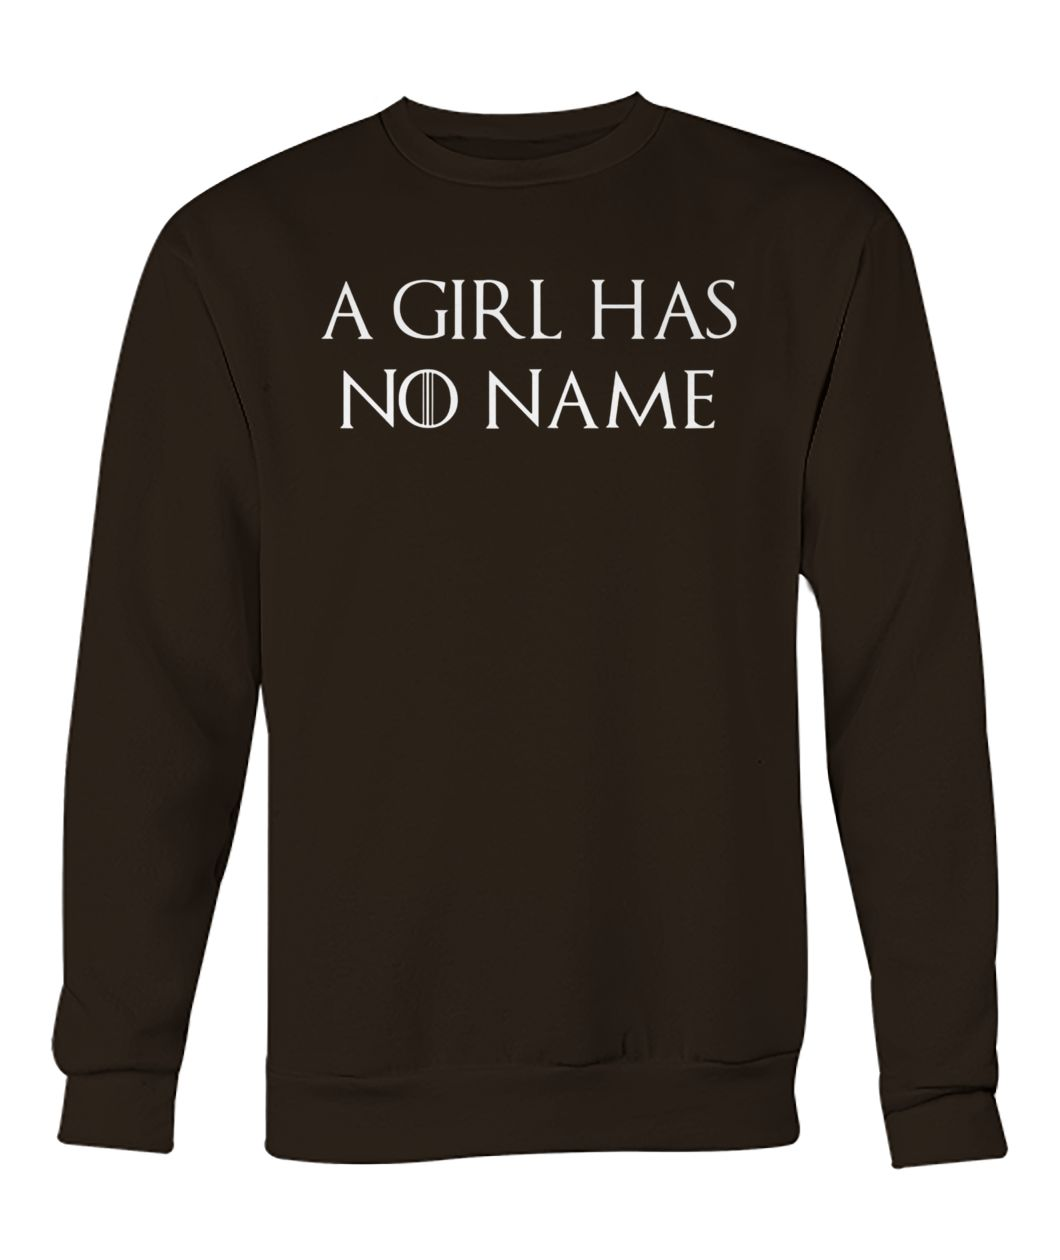 Game of thrones a girl has no name crew neck sweatshirt